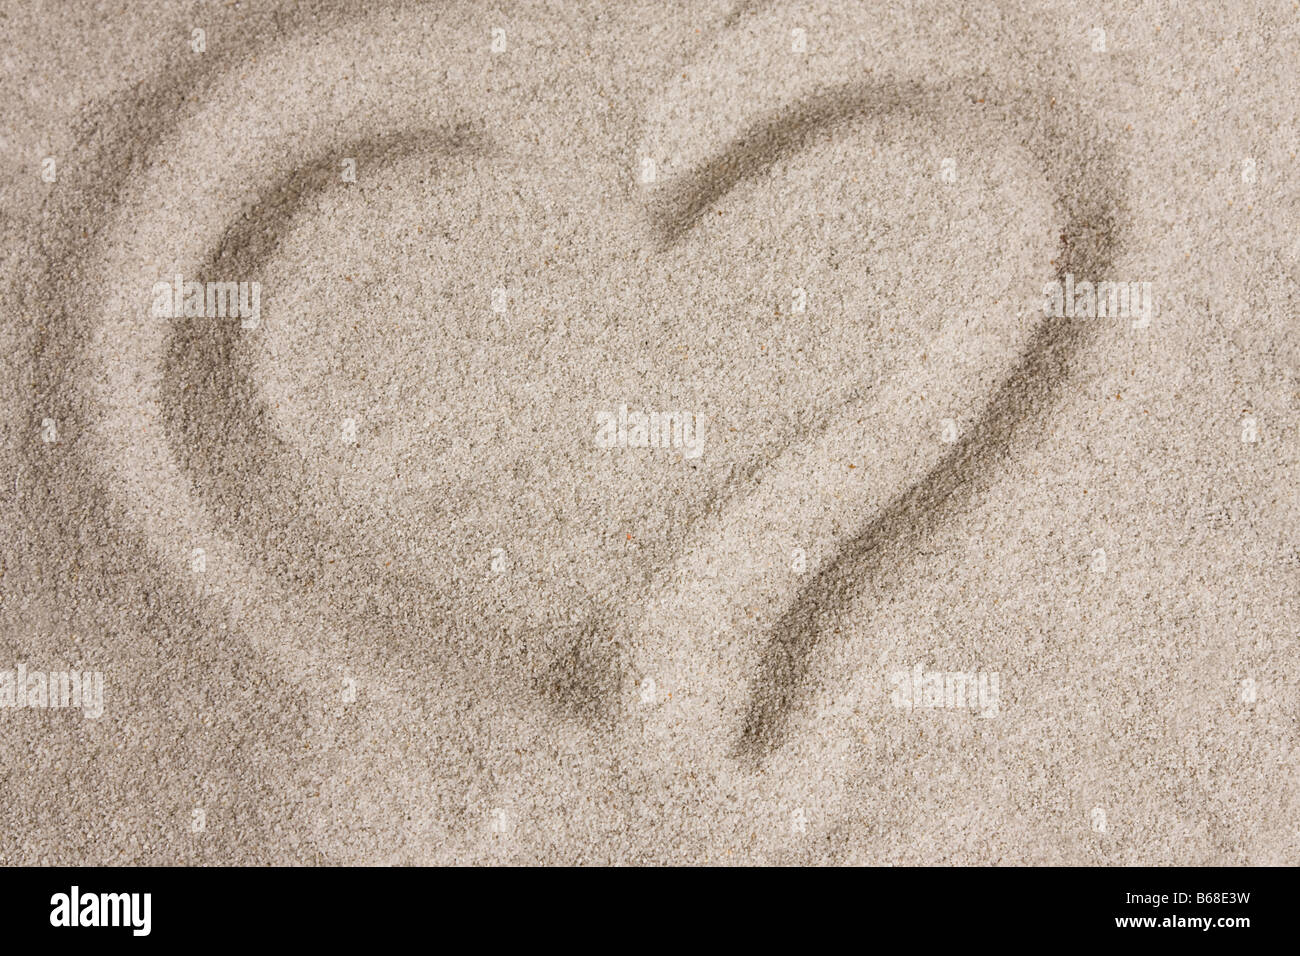 Heart written shape in the sand - Stock Image